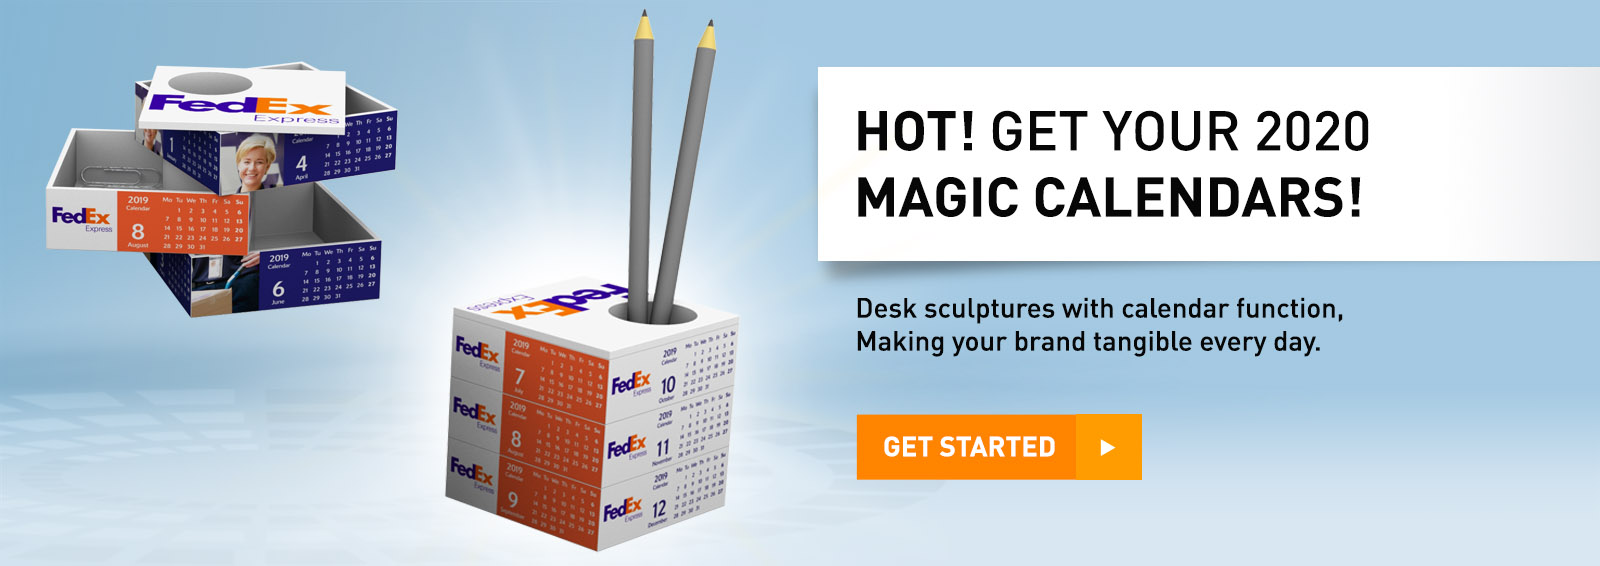 Desk sculptures with calendar function, Making your brands tangible every day.